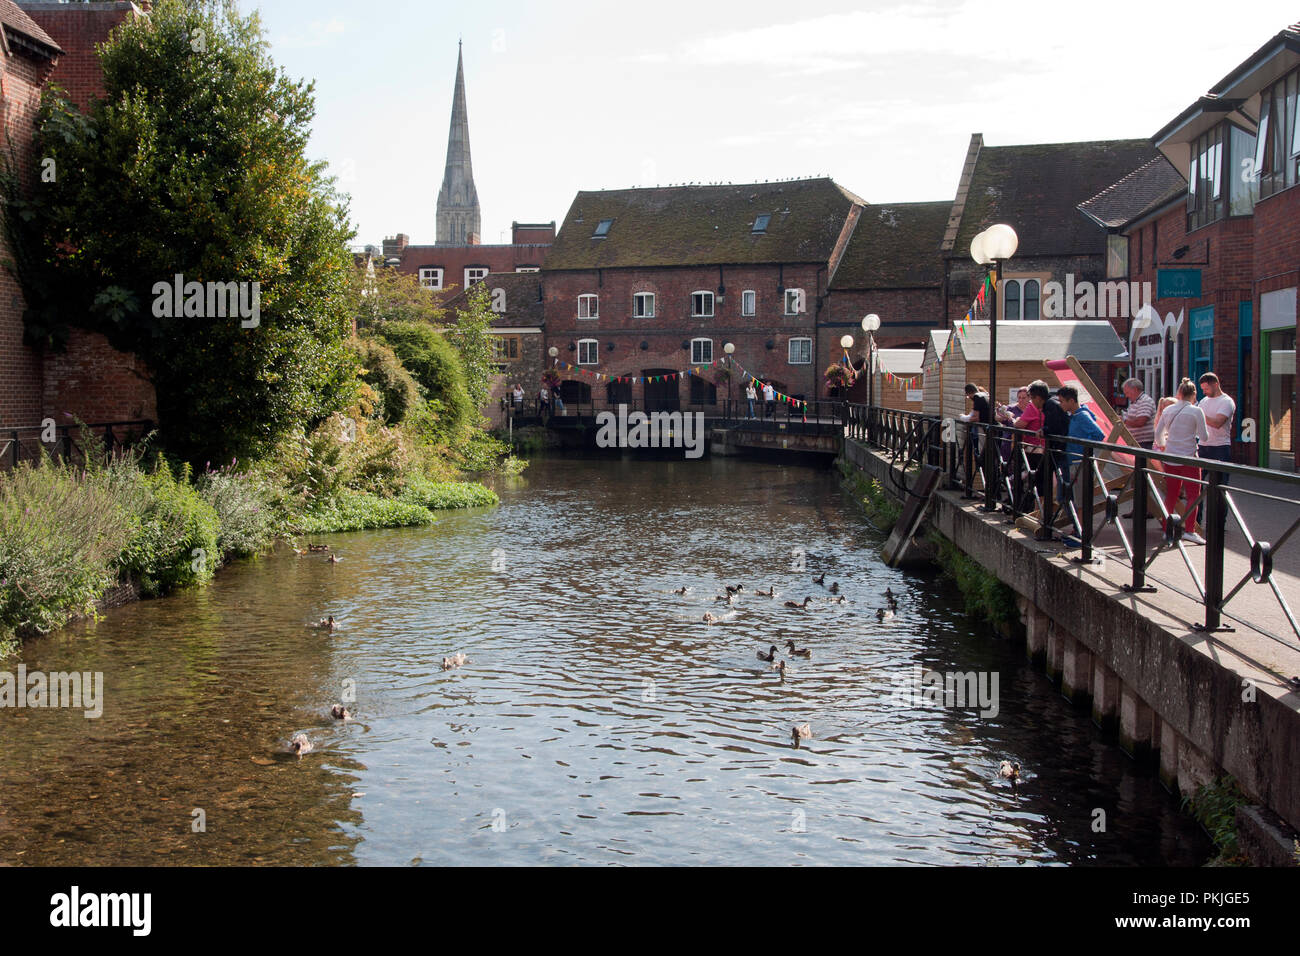 River Avon and old watermill commercial area opens after the Skripal novichok tragedy, Salisbury, Wiltshire, England - Stock Image